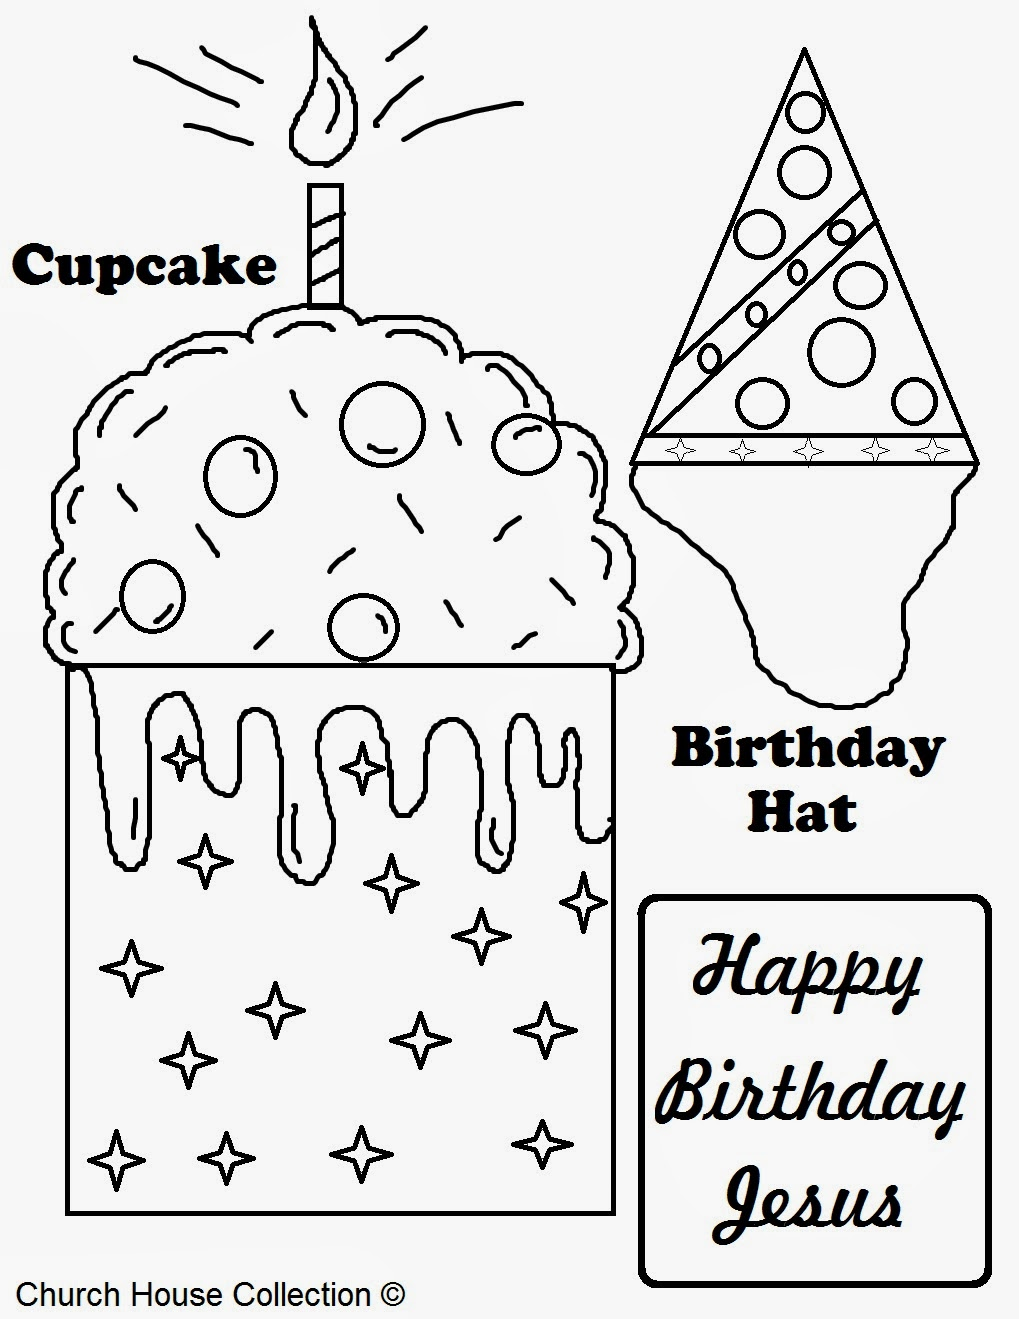 Church house collection blog the centurion servant healed for Jesus birthday coloring pages